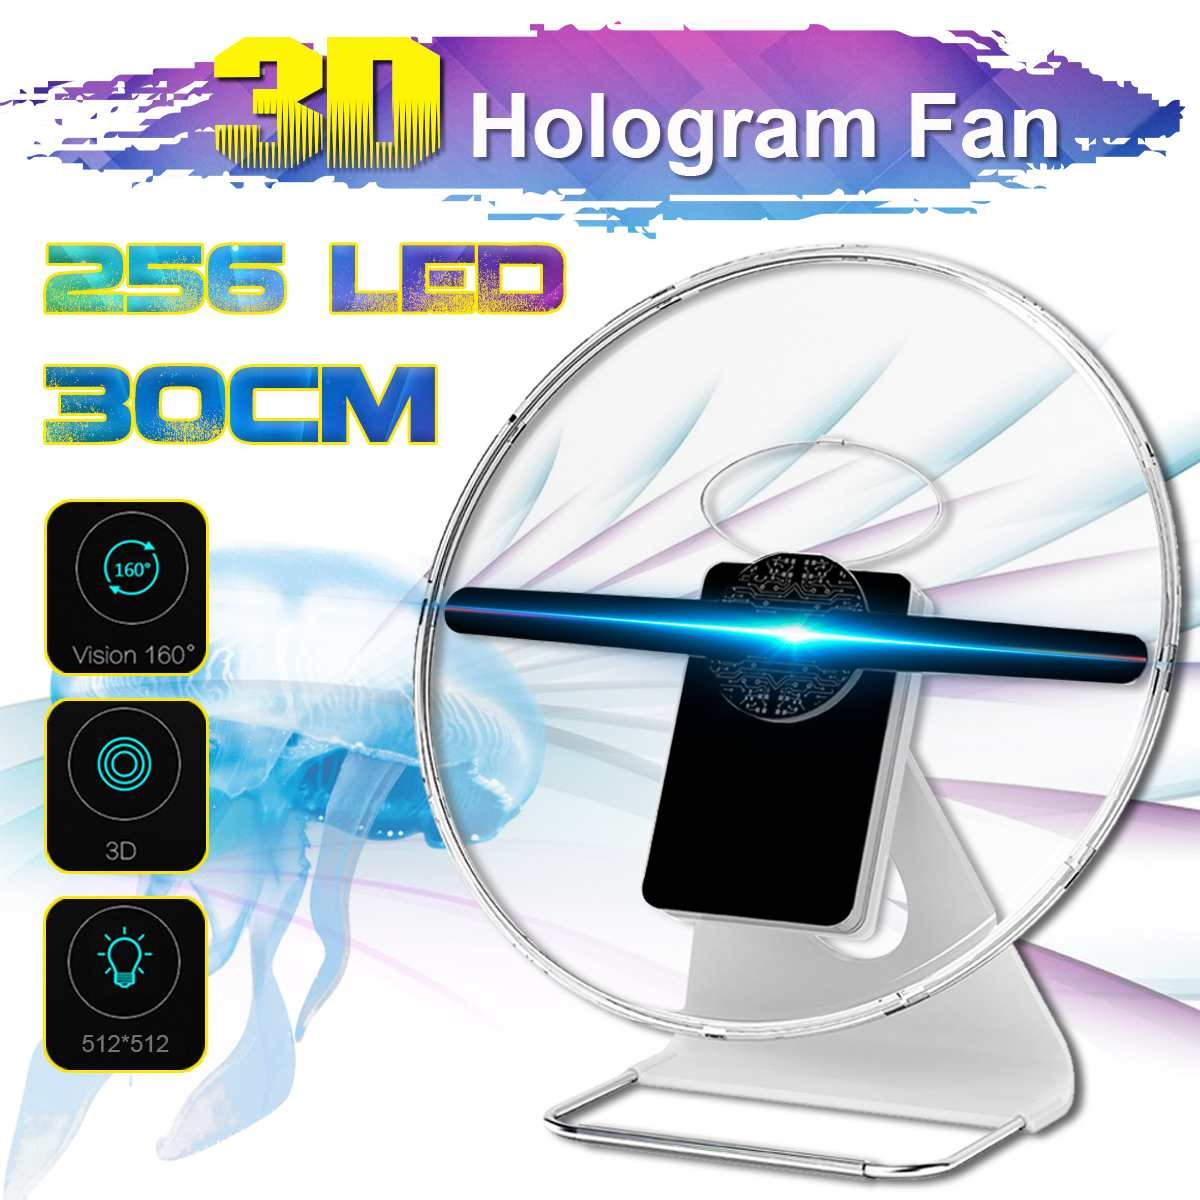 Portable 30CM 3D Holographic Projector With Battery Hologram Player LED Display Fan Advertising Light APP ControlPortable 30CM 3D Holographic Projector With Battery Hologram Player LED Display Fan Advertising Light APP Control